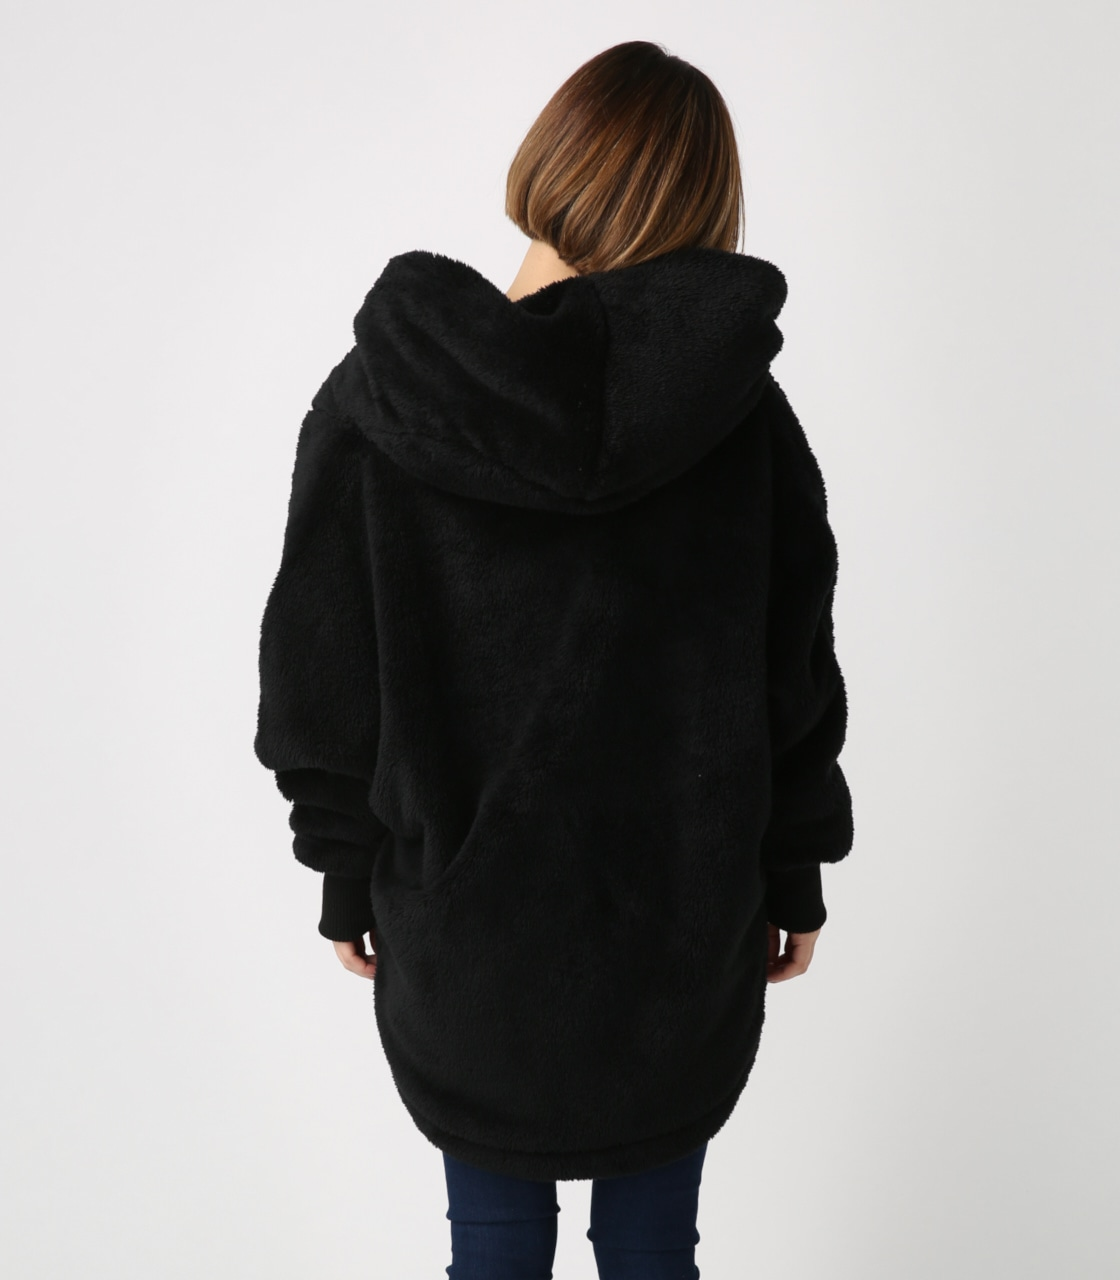 【AZUL BY MOUSSY】ボアショールカラーロングコート【MOOK44掲載 99031】 詳細画像 BLK 7